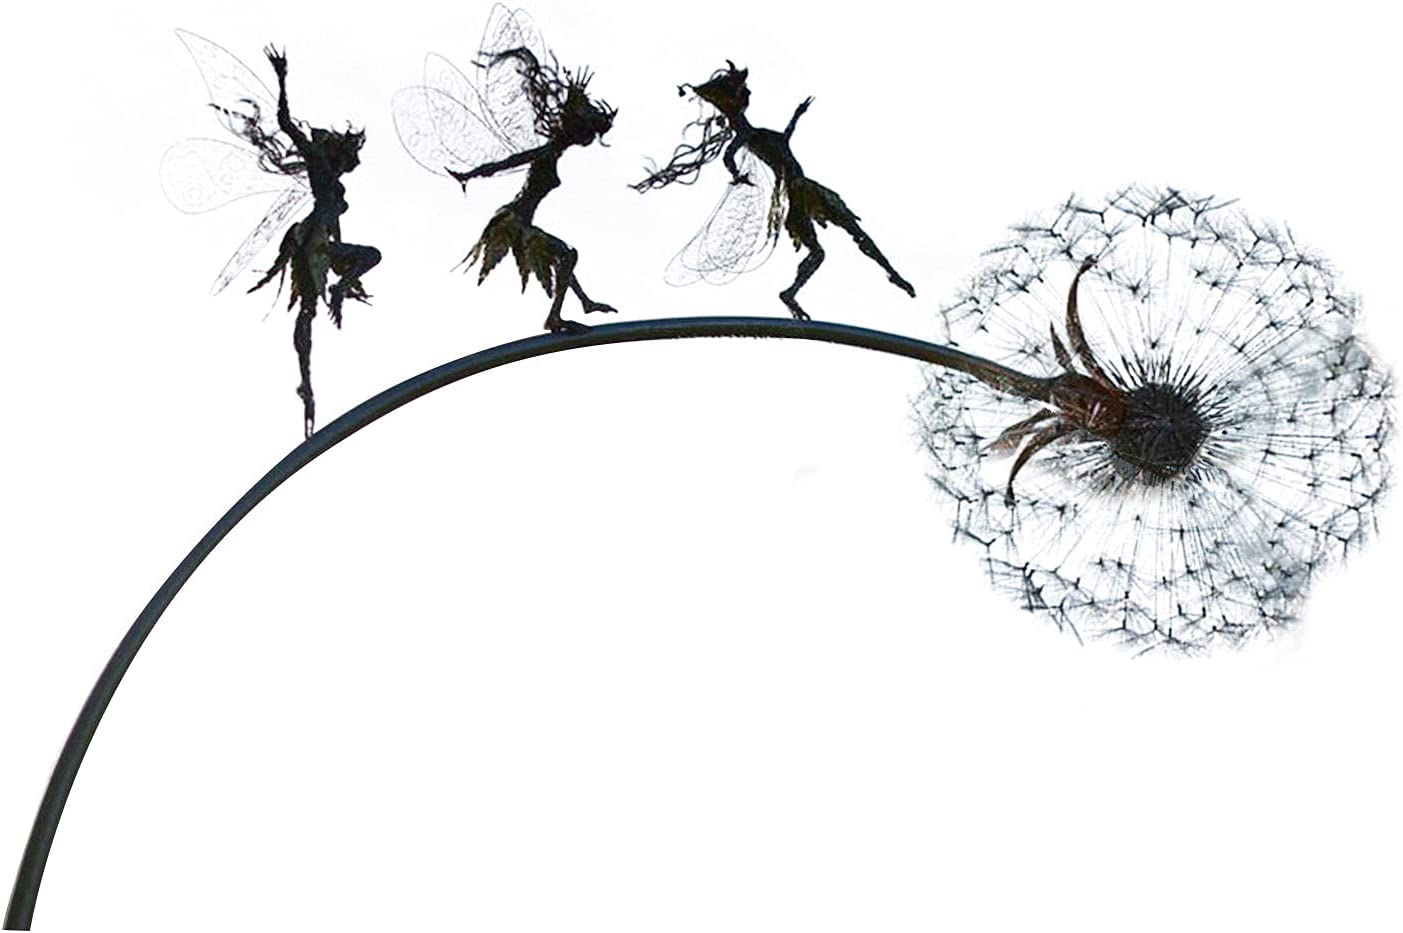 Faries and Dandelions Dance Together Sculpture,Robin Wight Wire Fairy Dandelion Sculptures Garden Stakes with Standing Pole, Dark Metal Art Wind Catcher for Indoor Outdoor Lawn Pathway Ornaments